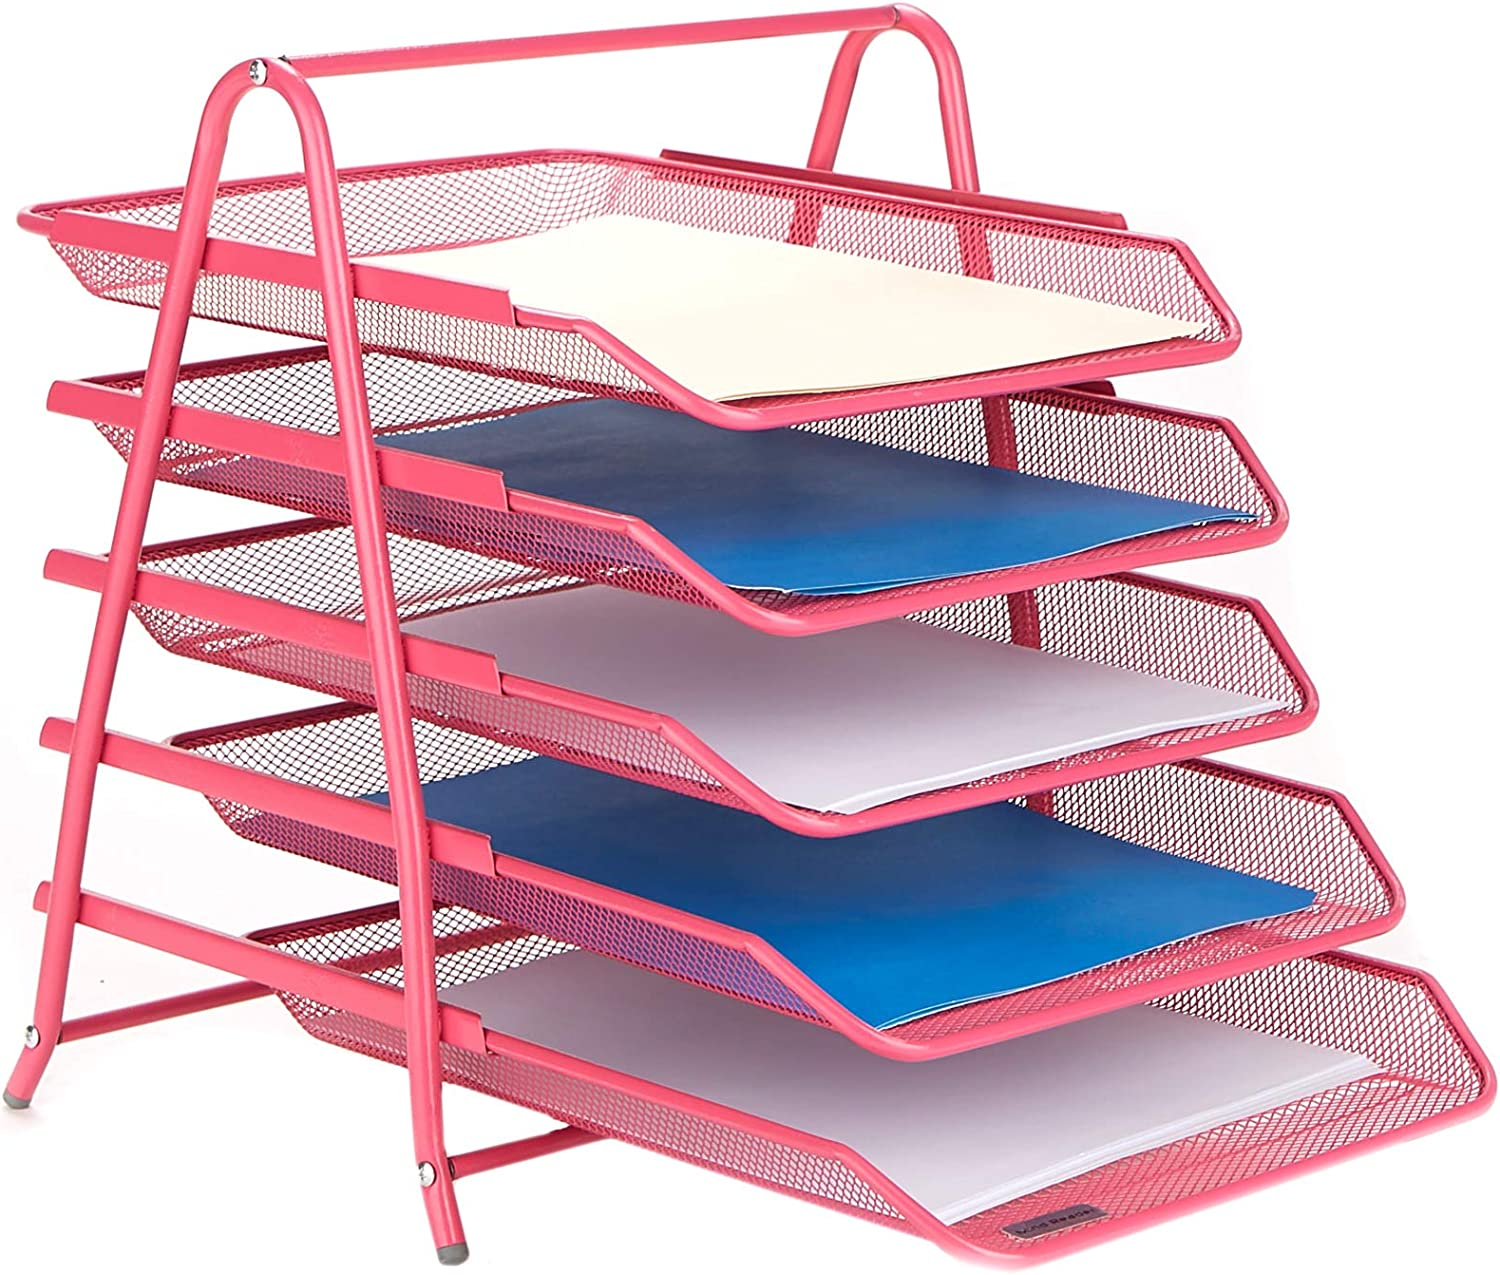 Mind Reader 5TPAPER-PNK Desk Organizer with 5 Sliding Trays for Letters, Documents, Mail, Files, Paper, Pink, 5 Tier